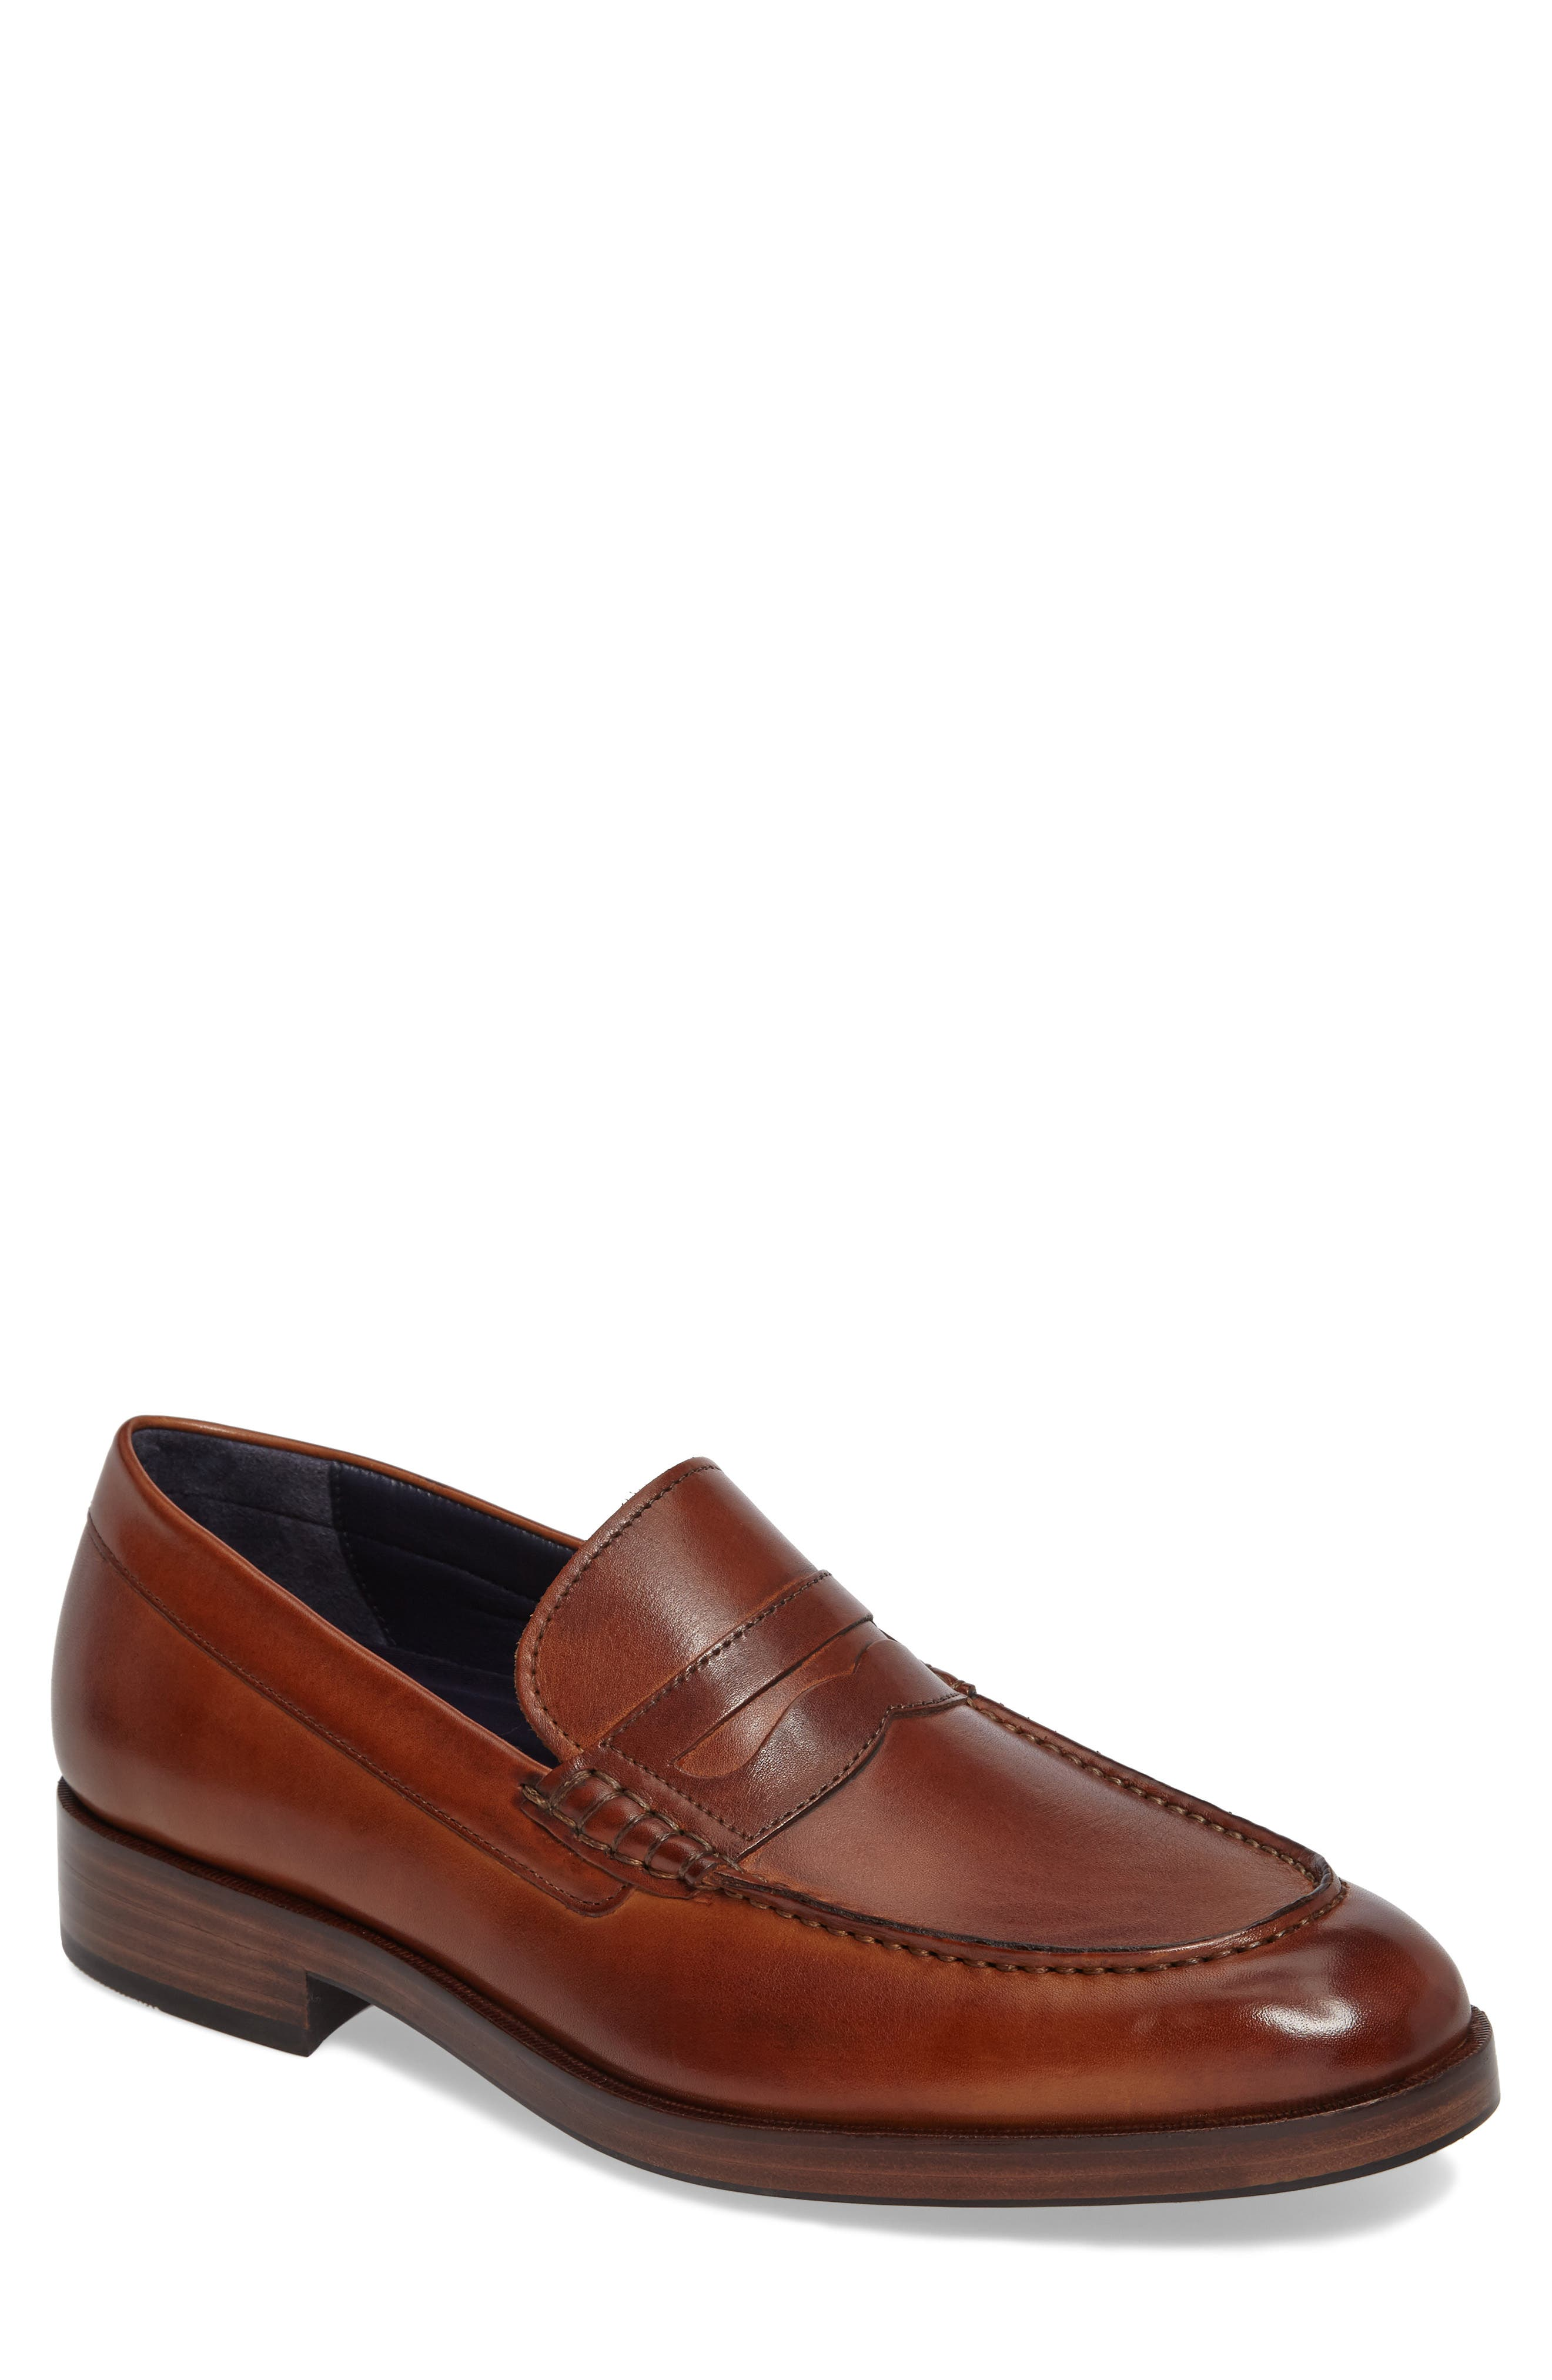 Harrison Grand Penny Loafer,                             Main thumbnail 1, color,                             COGNAC/ DARK NATURAL LEATHER